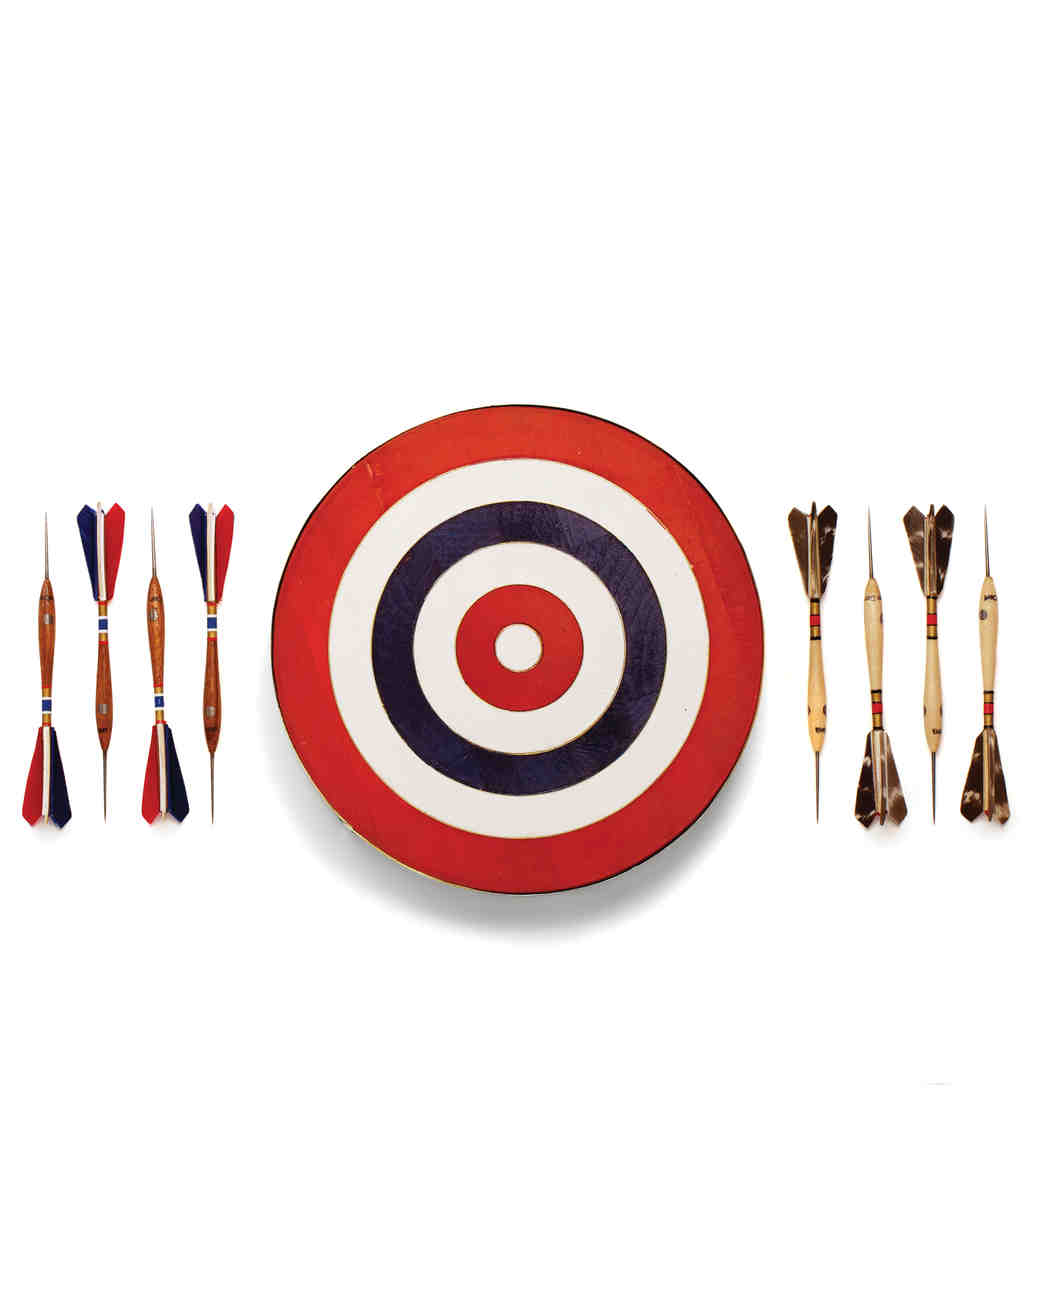 fathers-gift-guide-decor-darts-0515.jpg